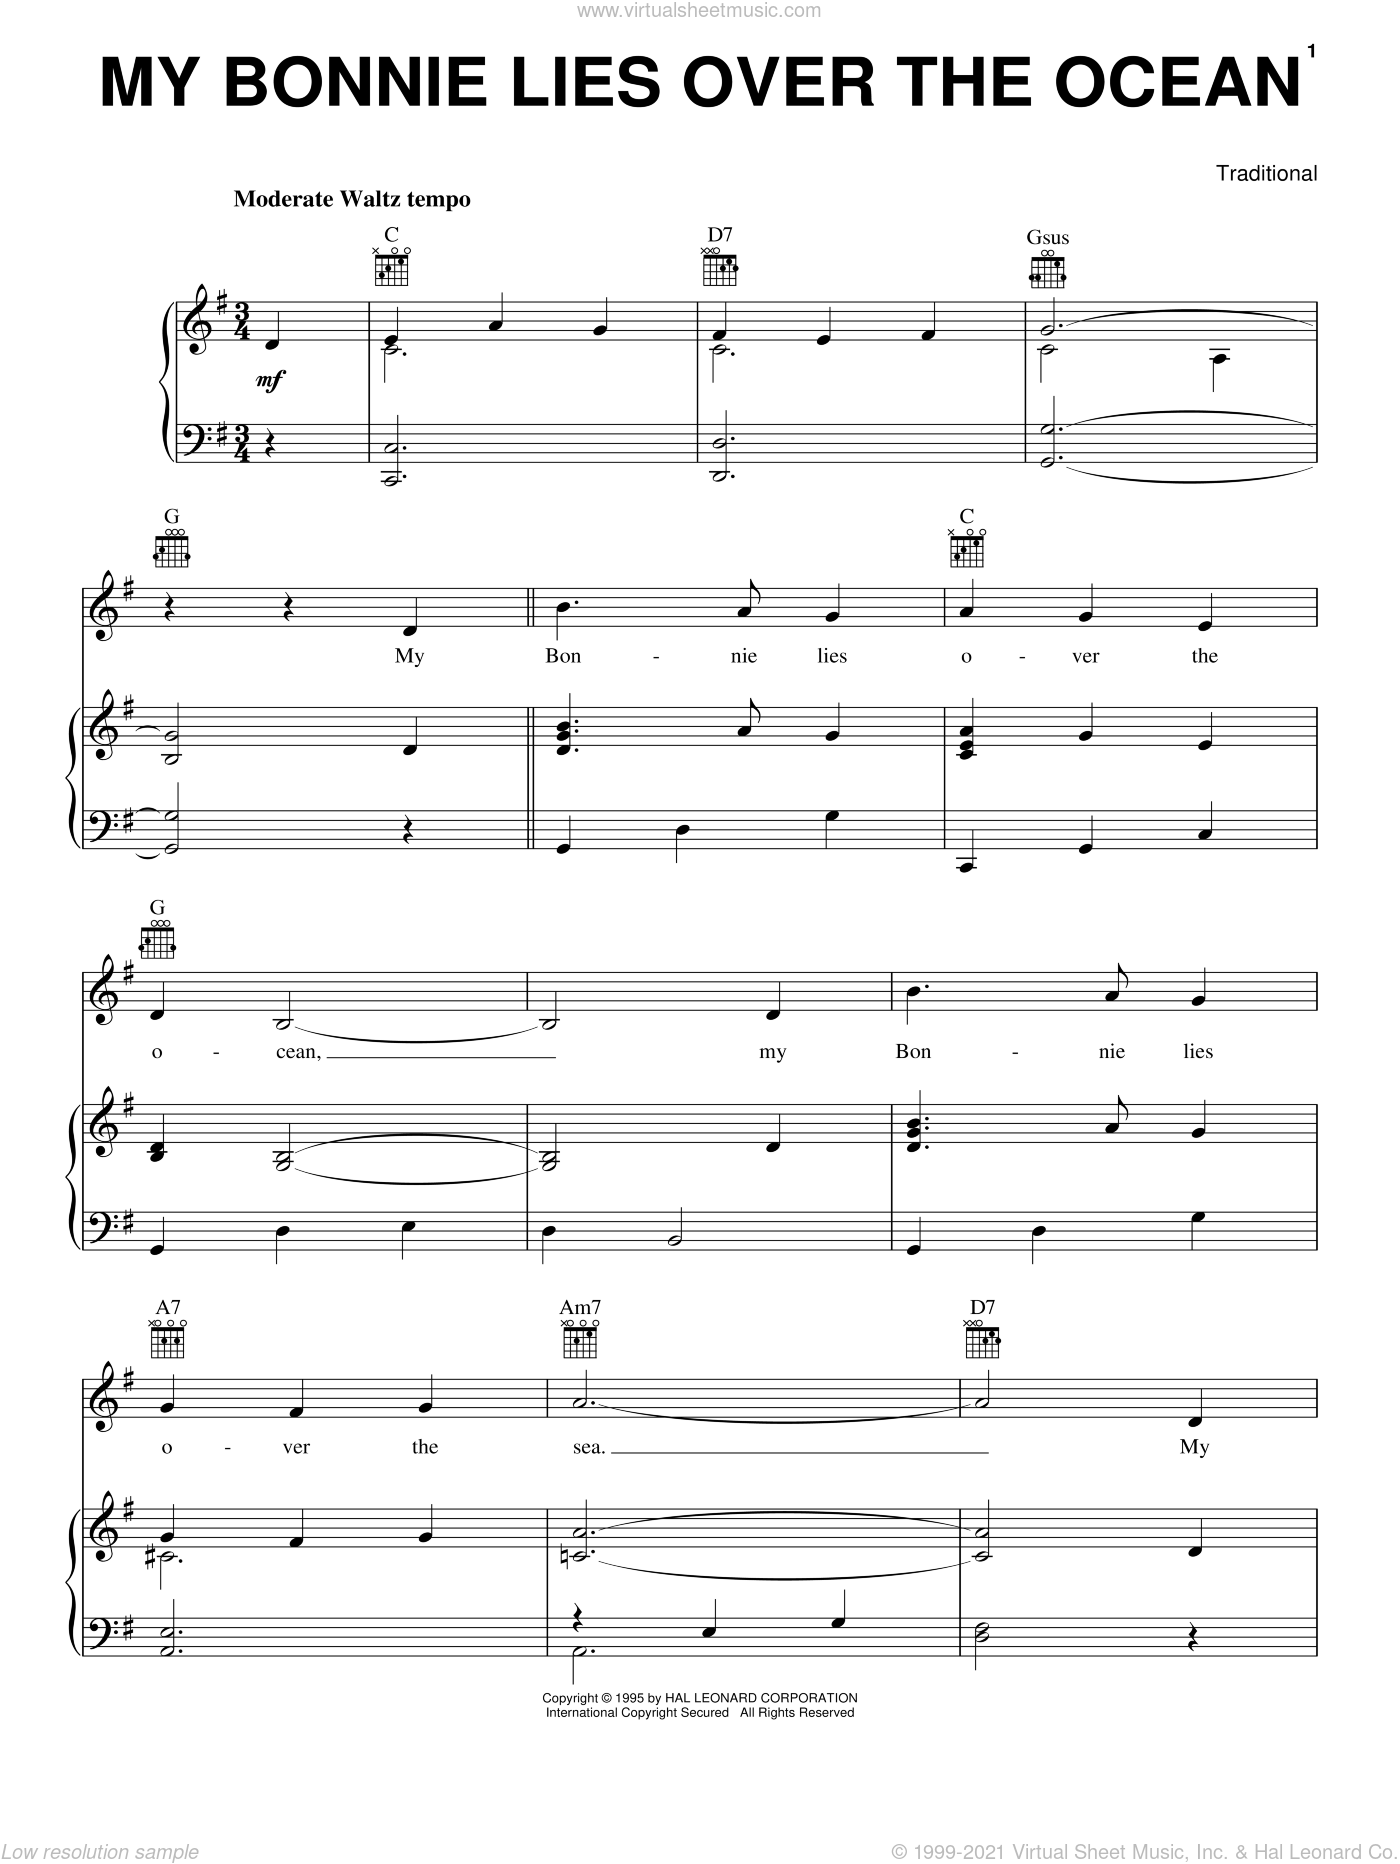 My Bonnie Lies Over The Ocean sheet music for voice, piano or guitar, intermediate skill level